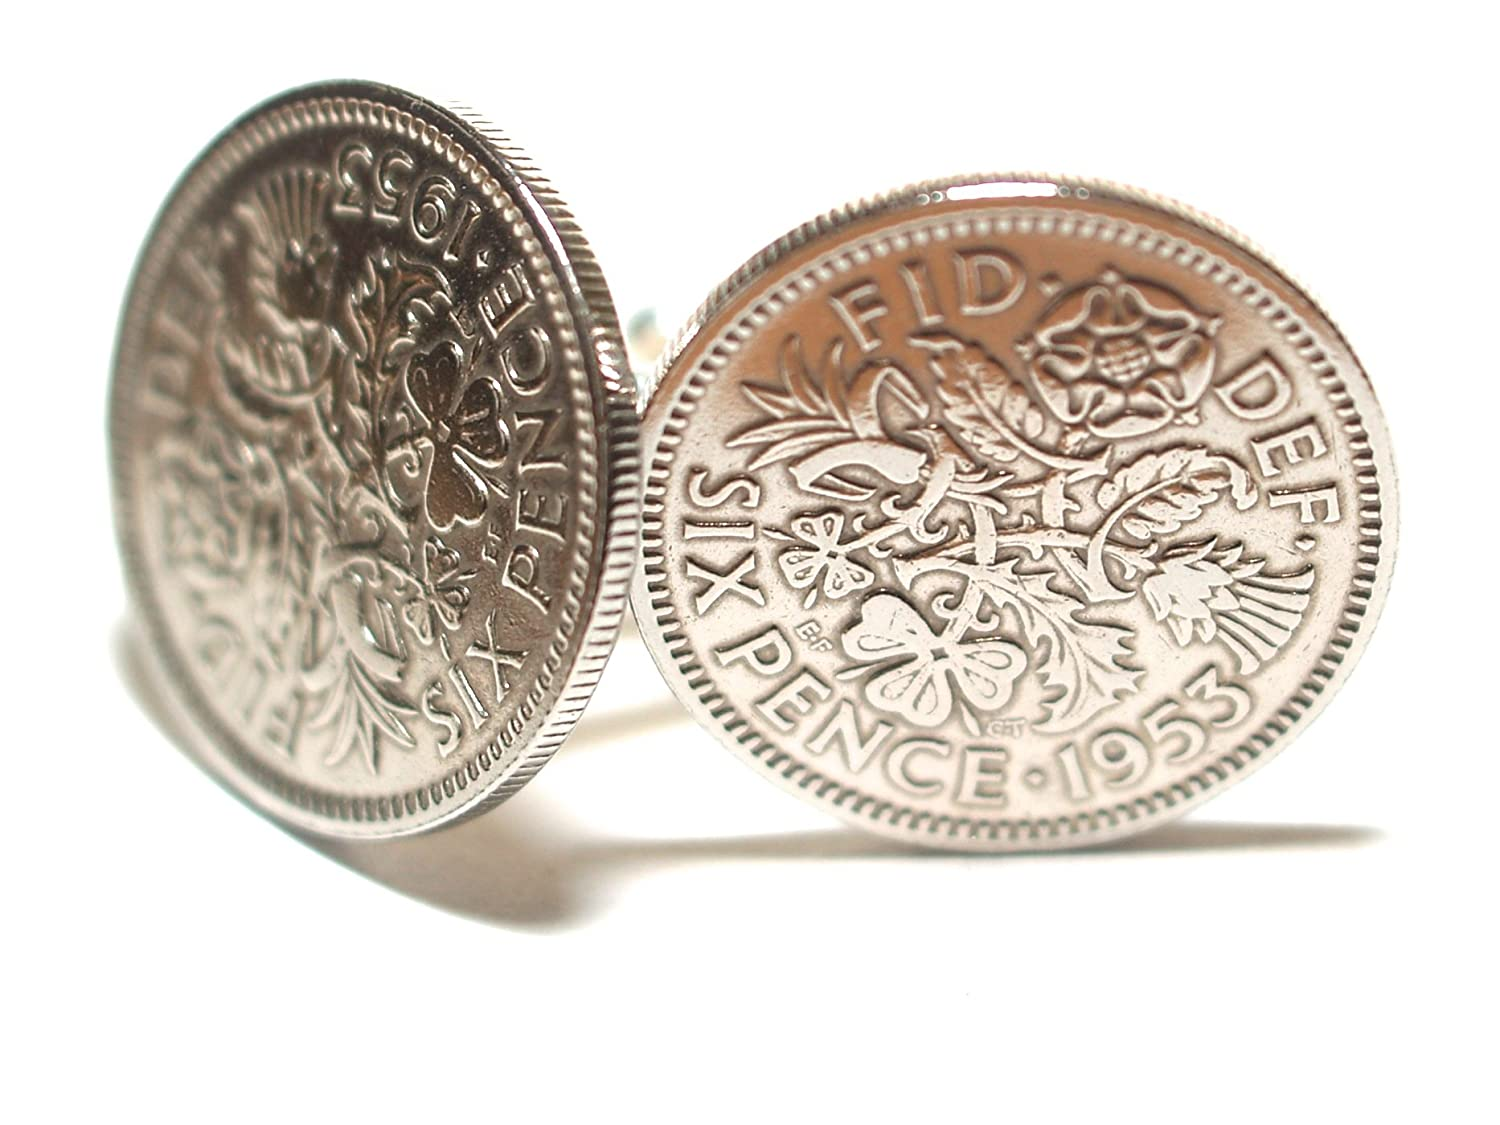 1953 Original Lucky Sixpence 6d birthday/Anniversary Cufflinks ideal for a 65th birthday rstrading 1953sixpencecuff